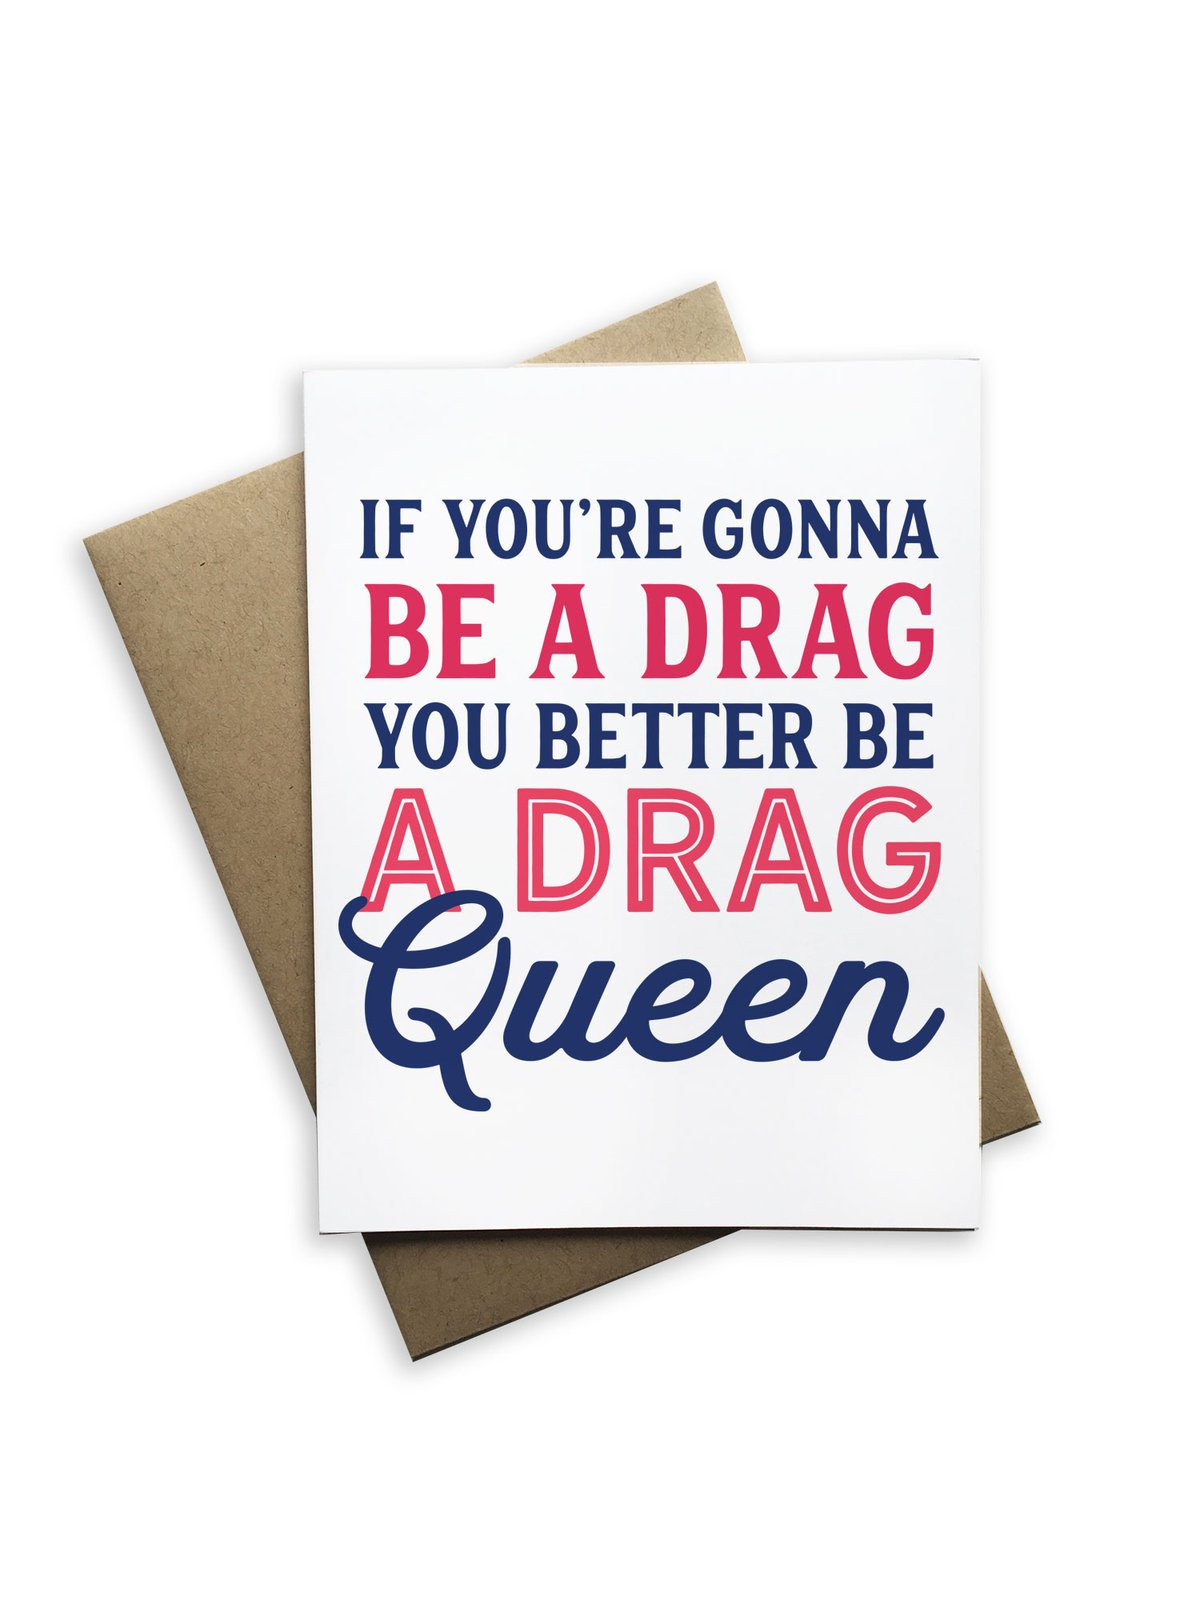 If You're Gonna Be a Drag Notecard - Heart of the Home PA